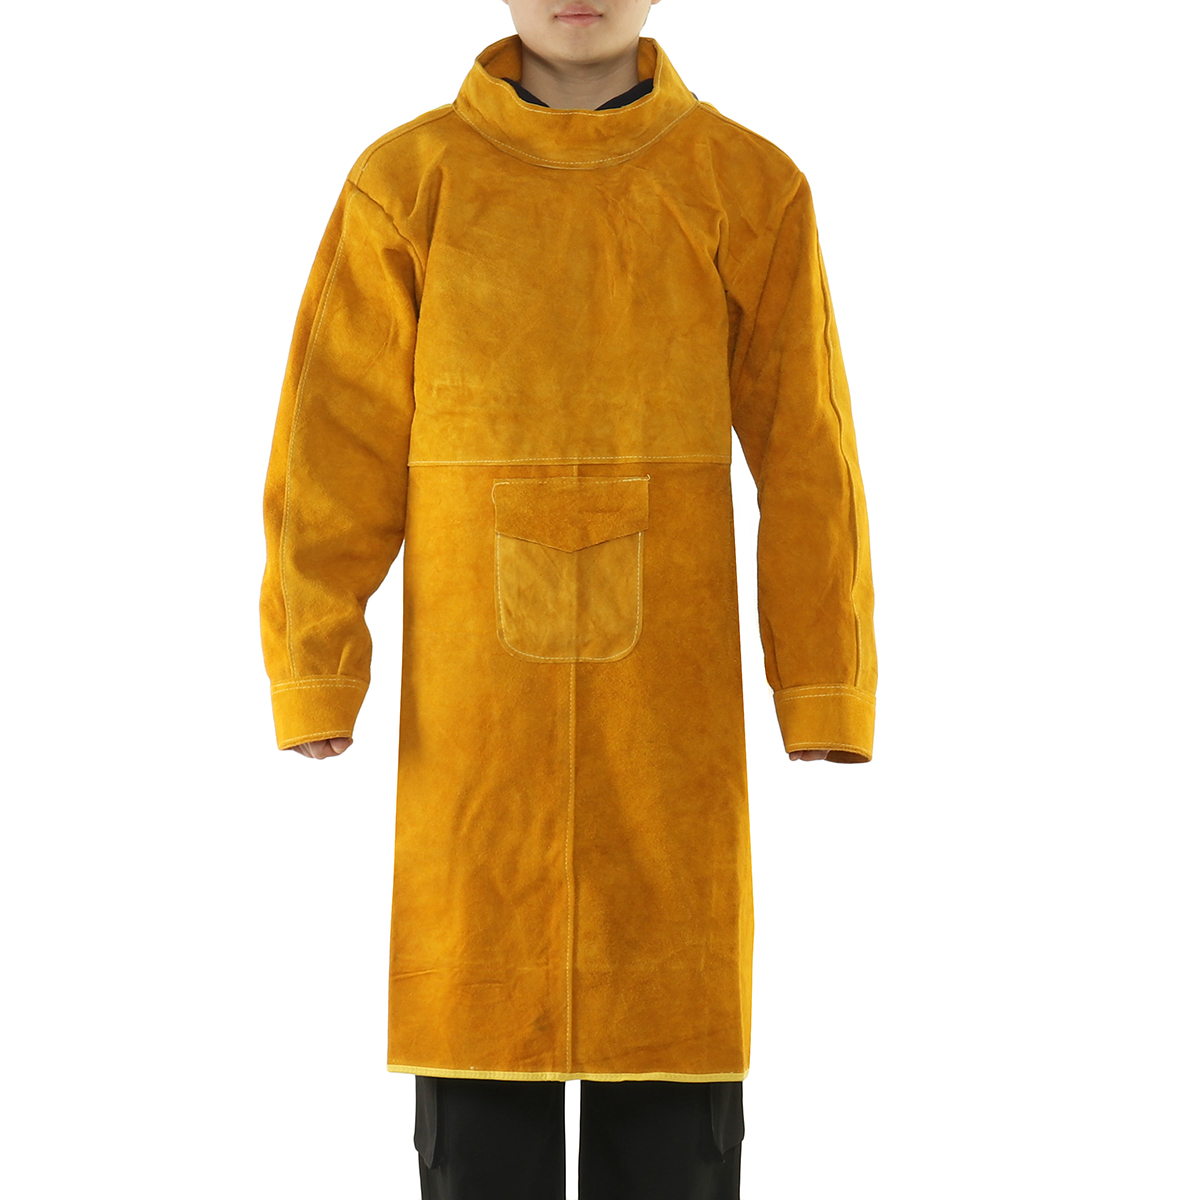 1.05m Cowhide Work Clothes Welding Protective Clothing Heat and